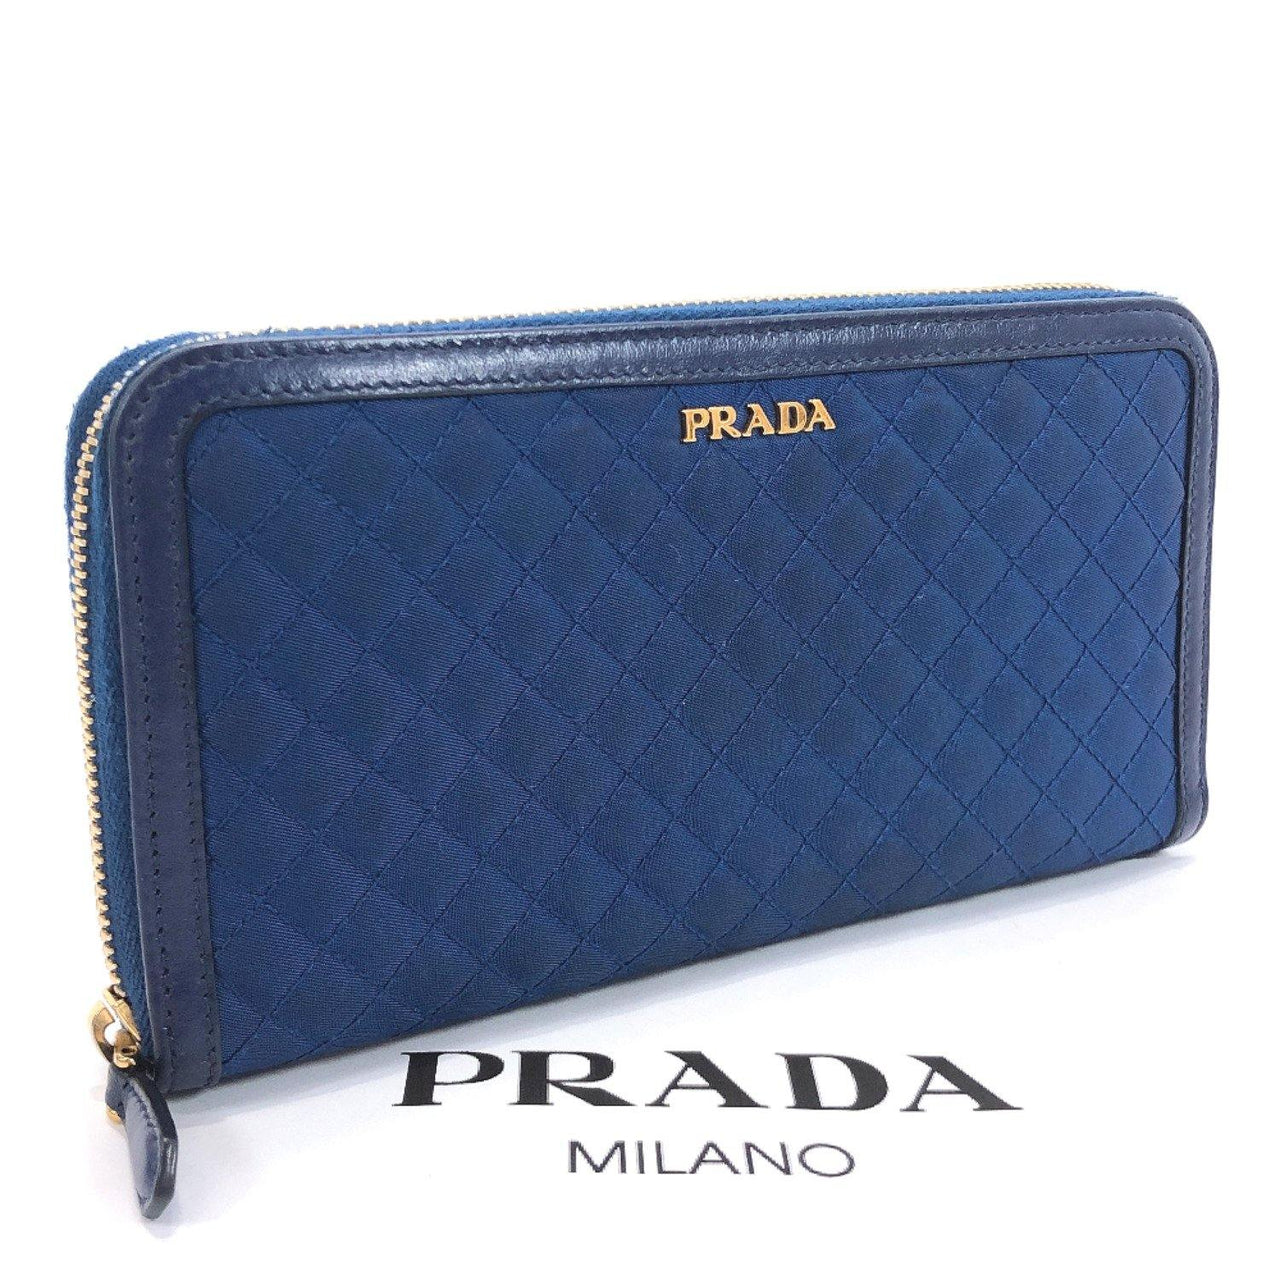 PRADA purse Round zip canvas/leather blue Women Used - JP-BRANDS.com